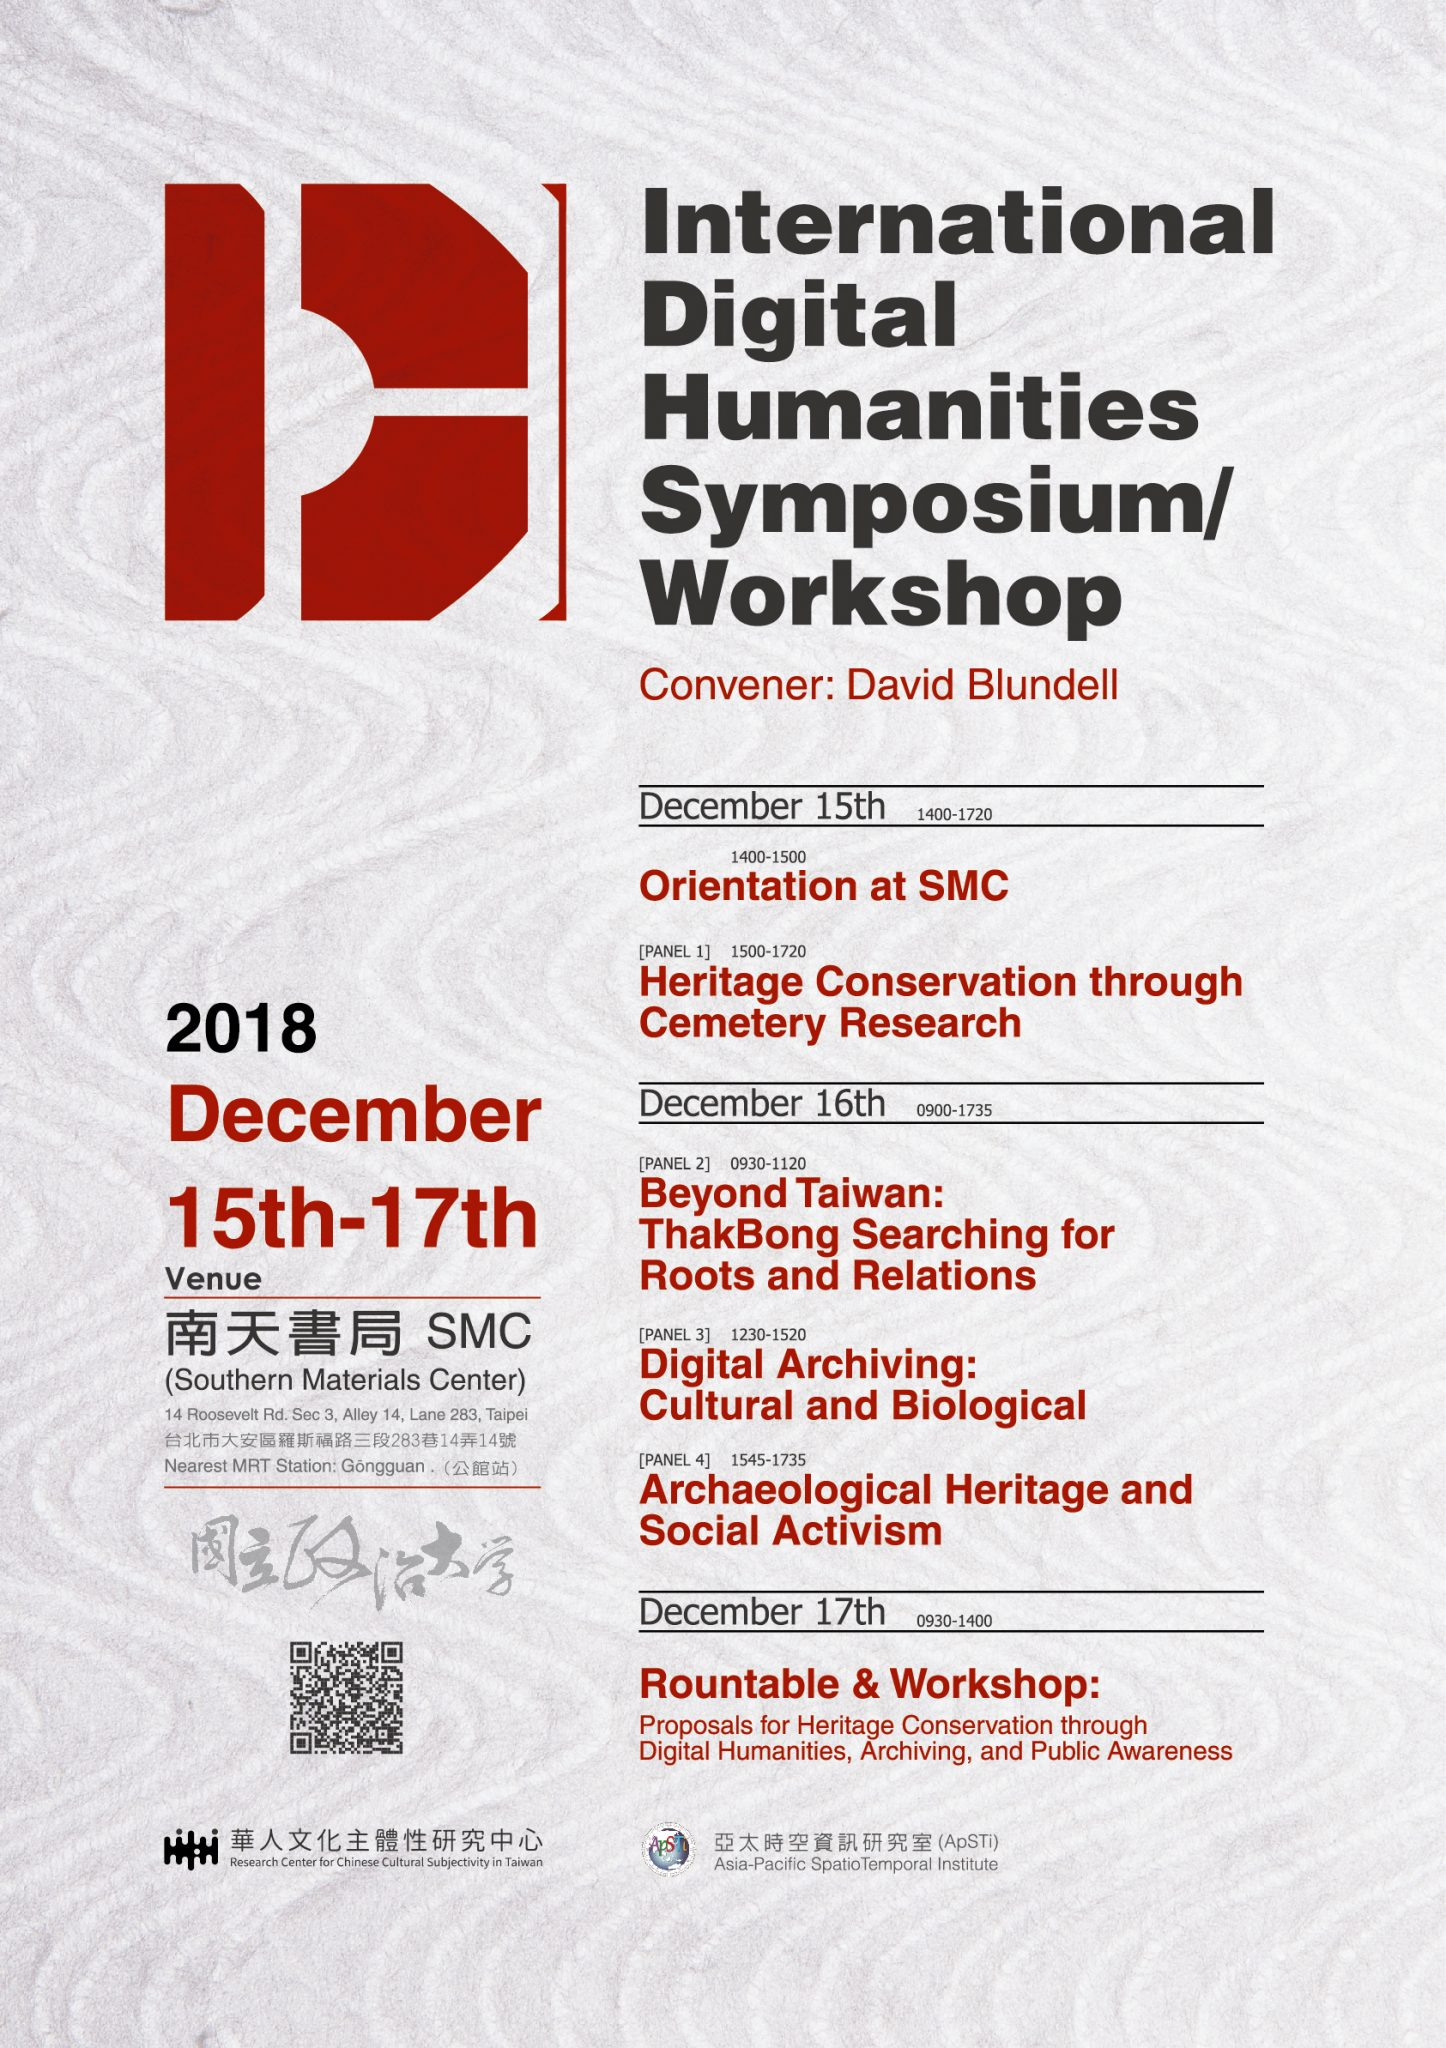 2018 International Digital Humanities Symposium 國際數位人文研討會